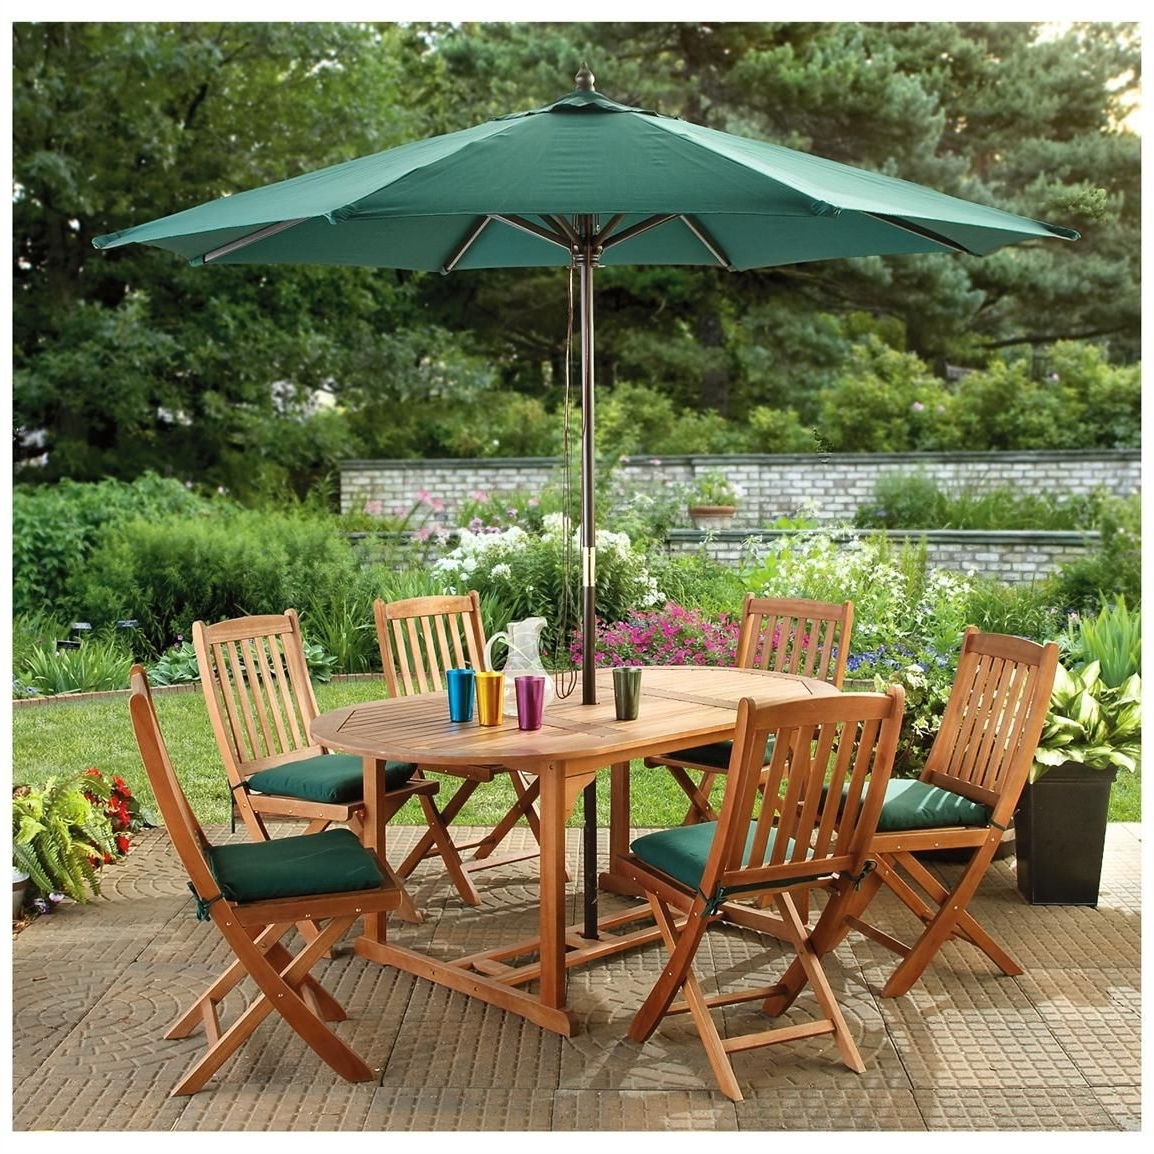 Patio Furniture With Umbrellas Regarding Most Recent Umbrellas For Patio Tables – Theradmommy (View 11 of 20)